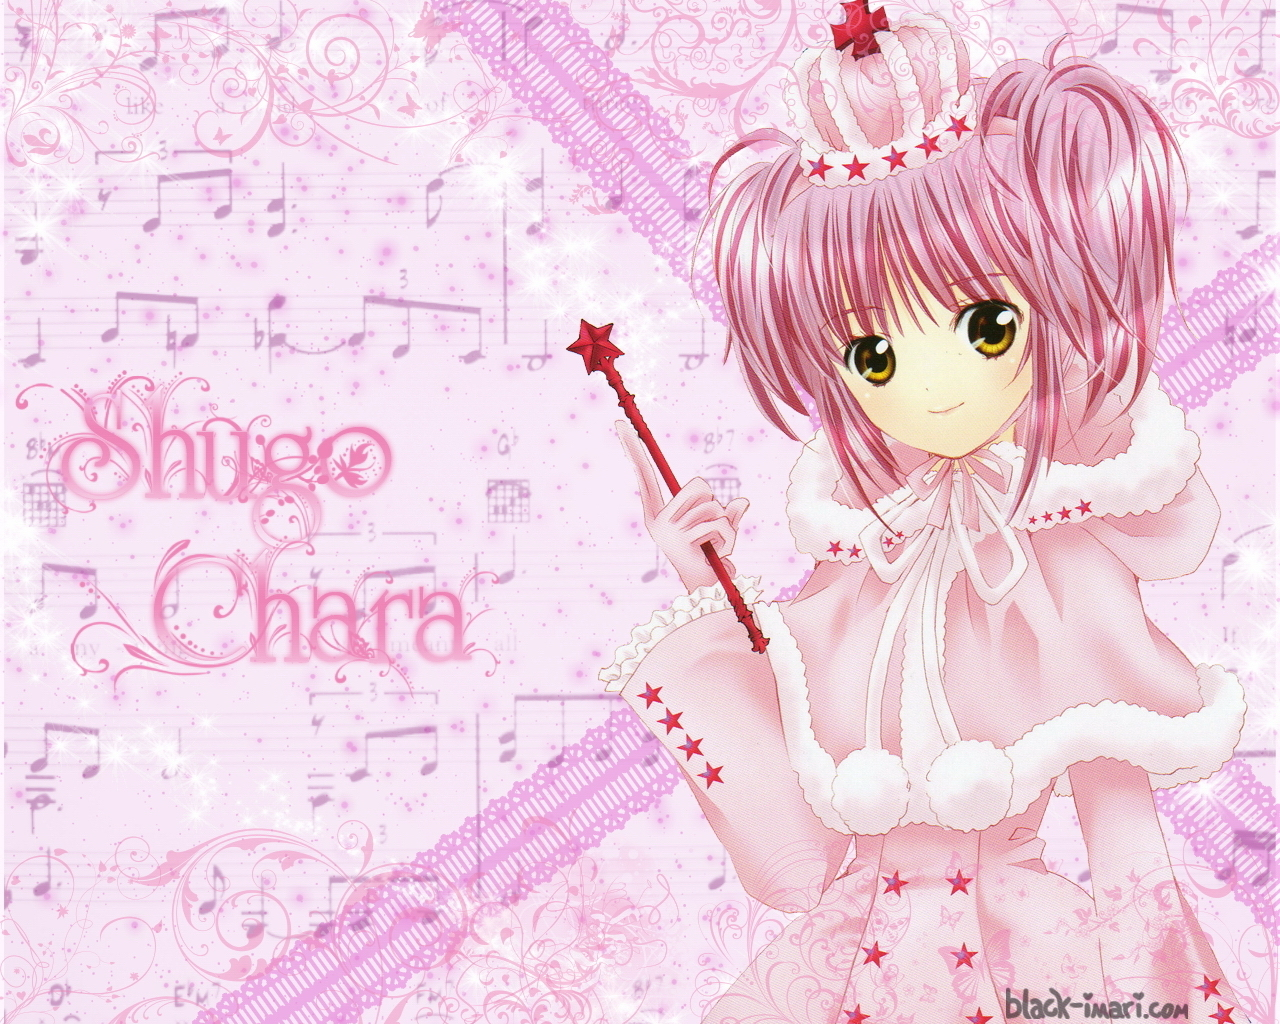 Shugo Chara images Pink Queen HD wallpaper and background photos